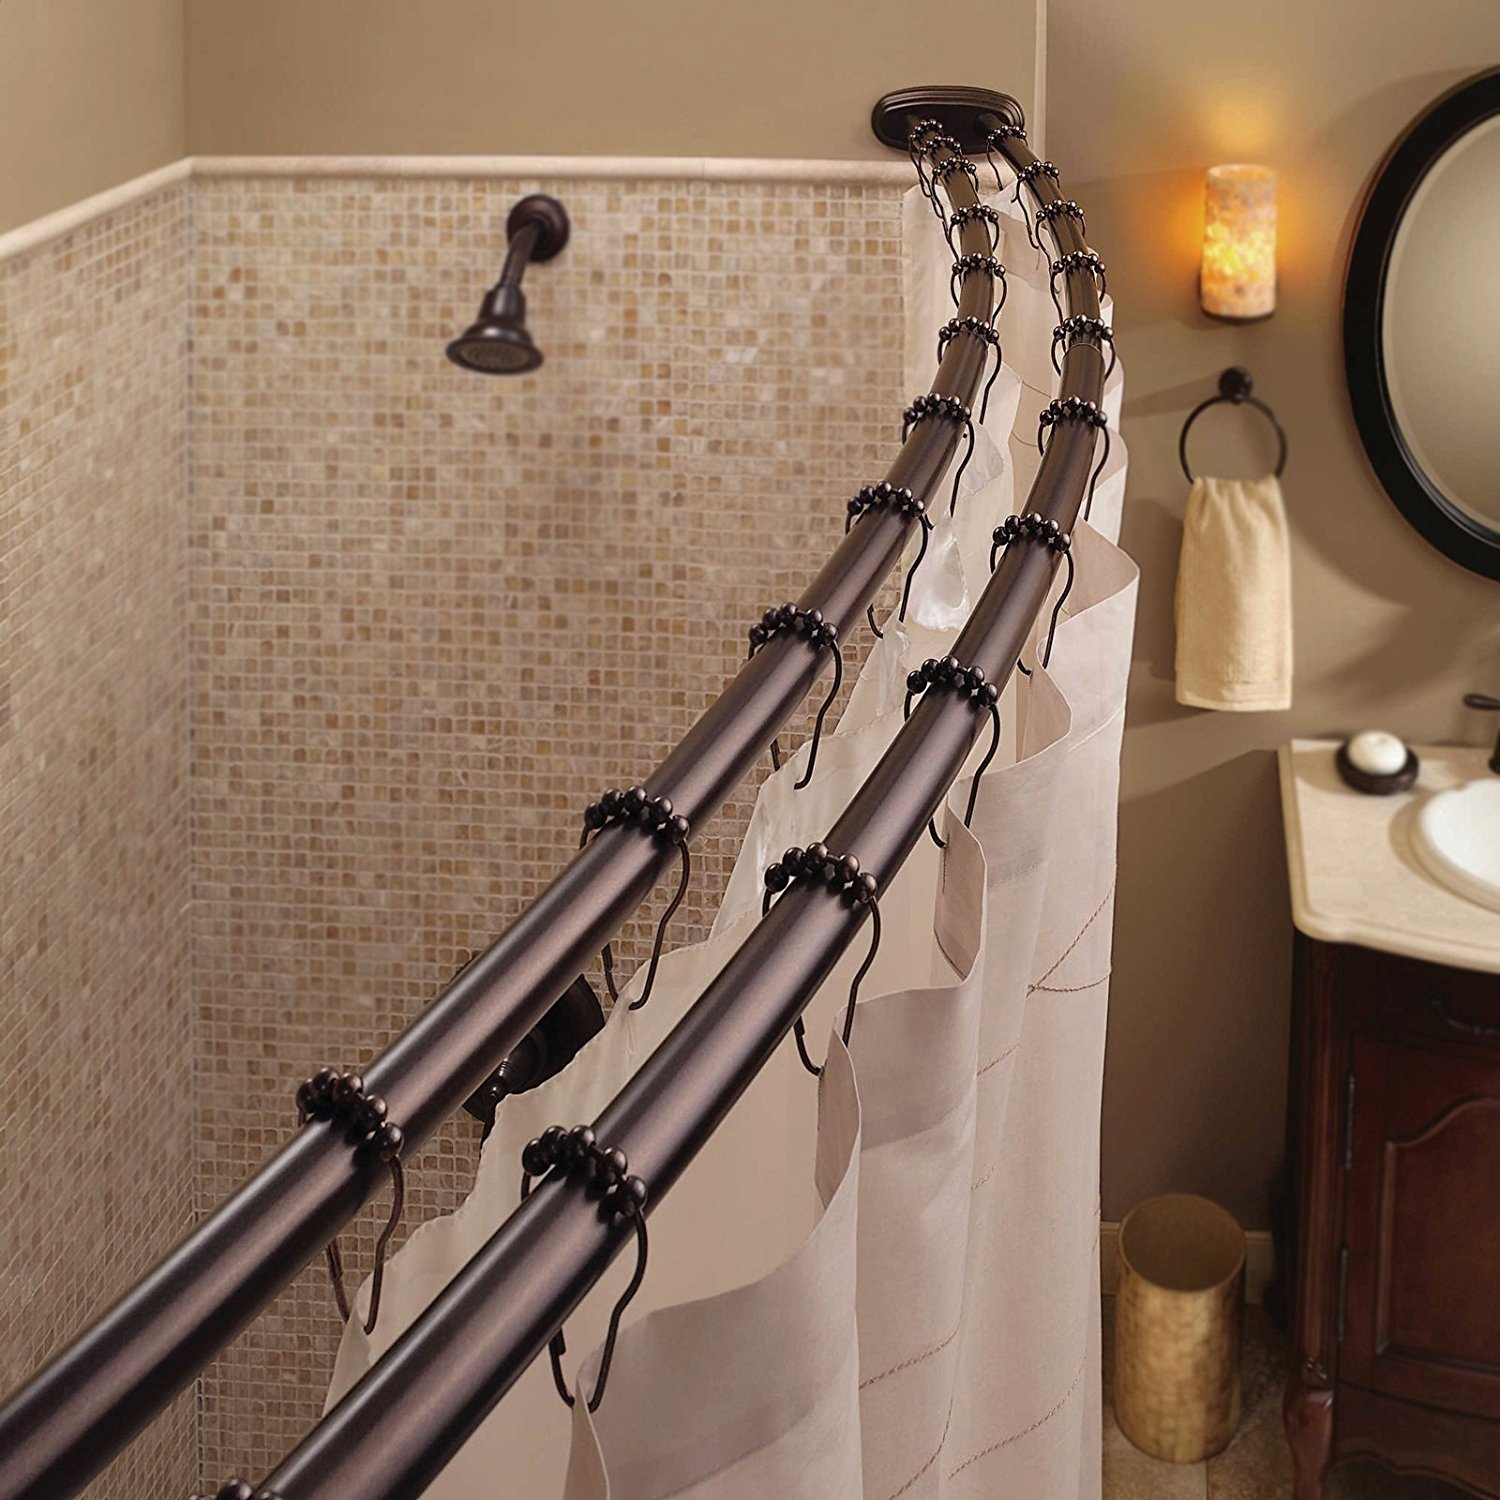 Shower Stall Curtain Rods | Shower Curtain Pole Holder | Shower Curtain Tension Rod